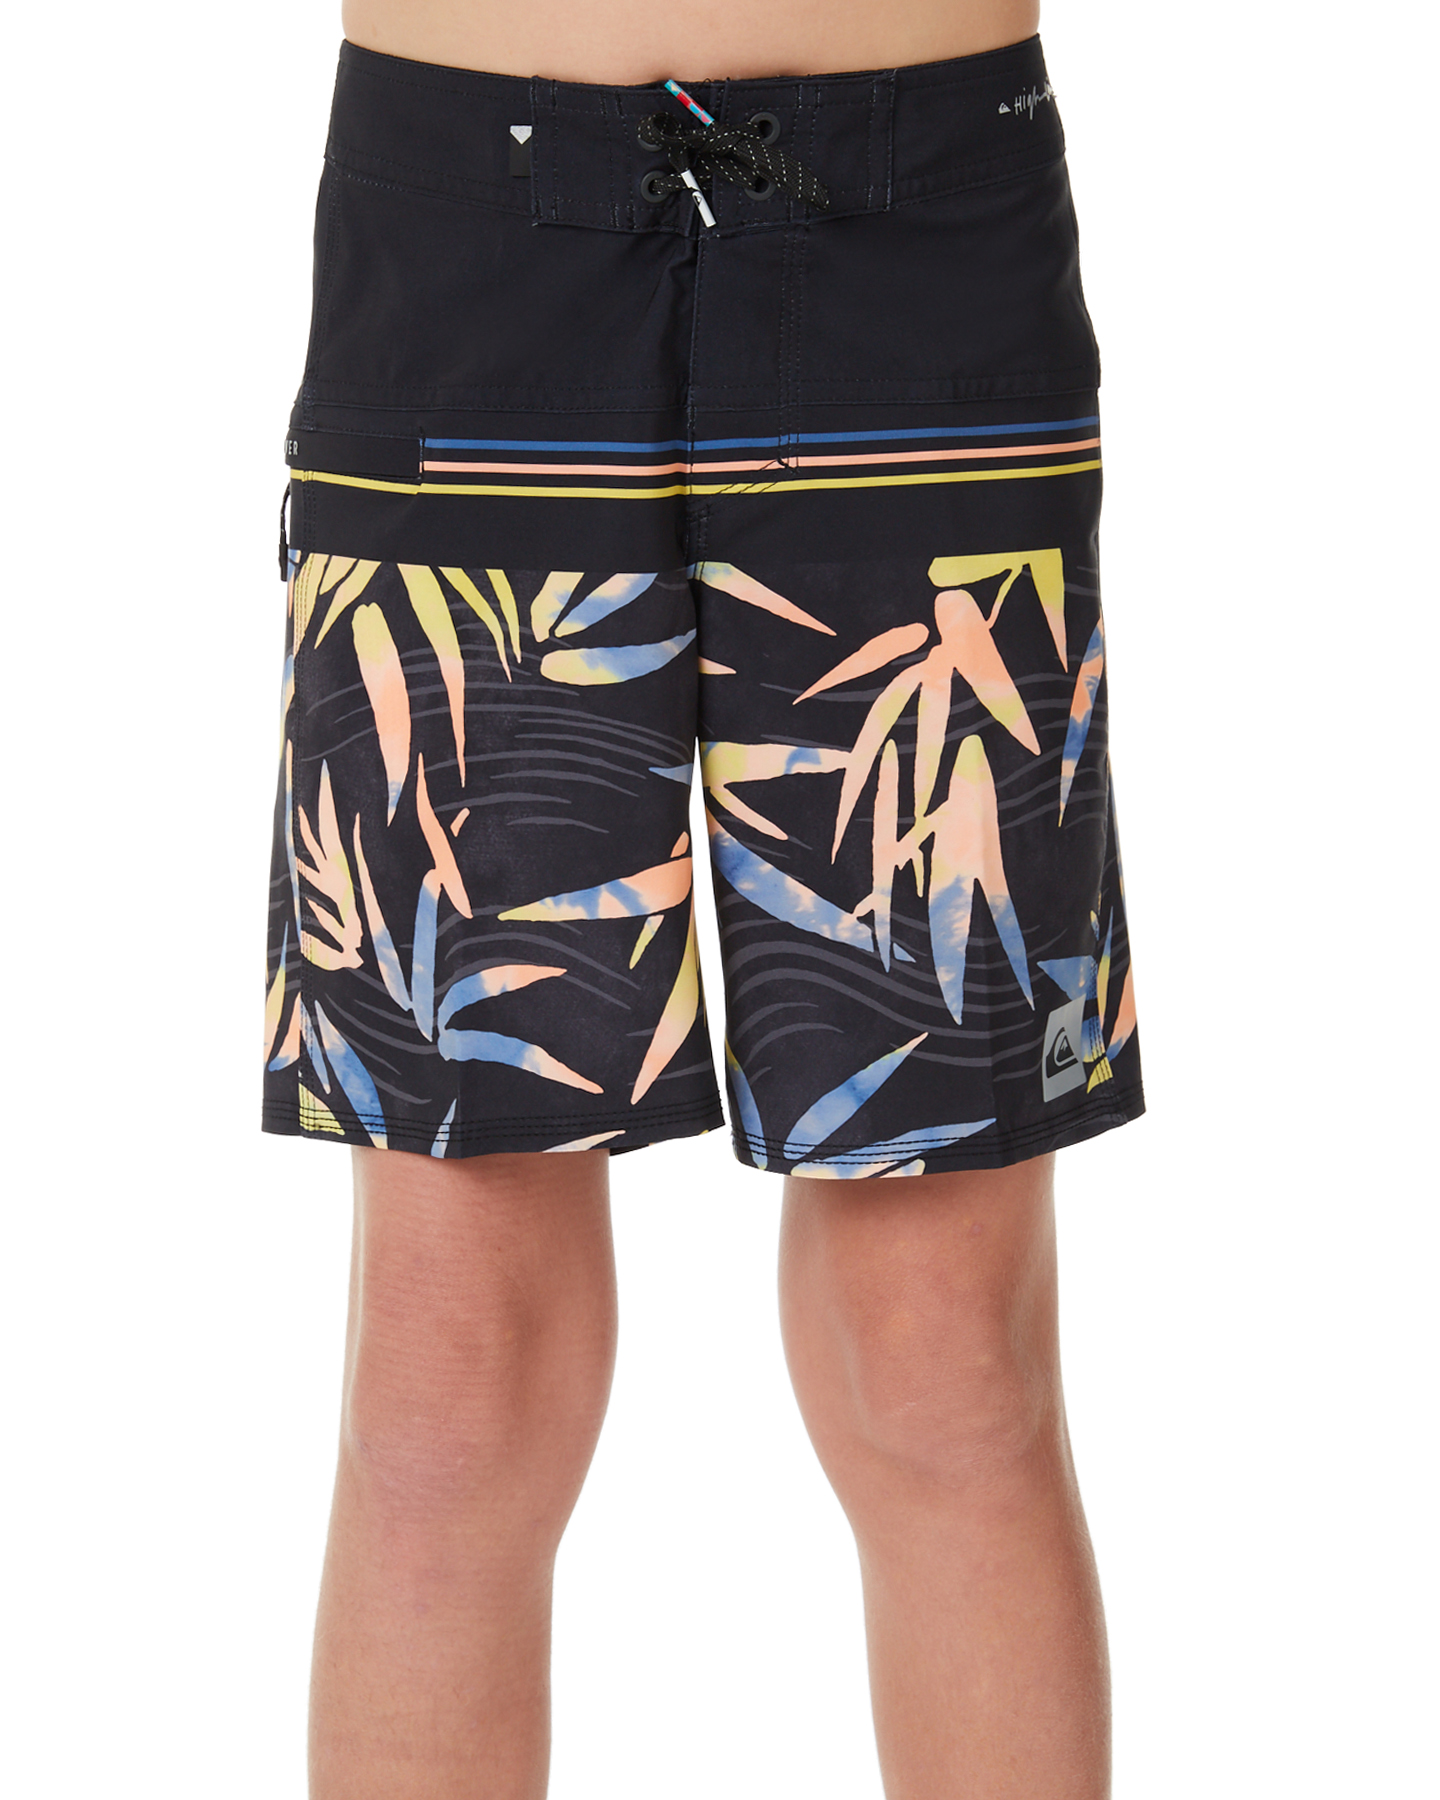 417a0eb2a1 Quiksilver Kids Boys Highline Zen Division Youth 16 Inch Boardshort Black